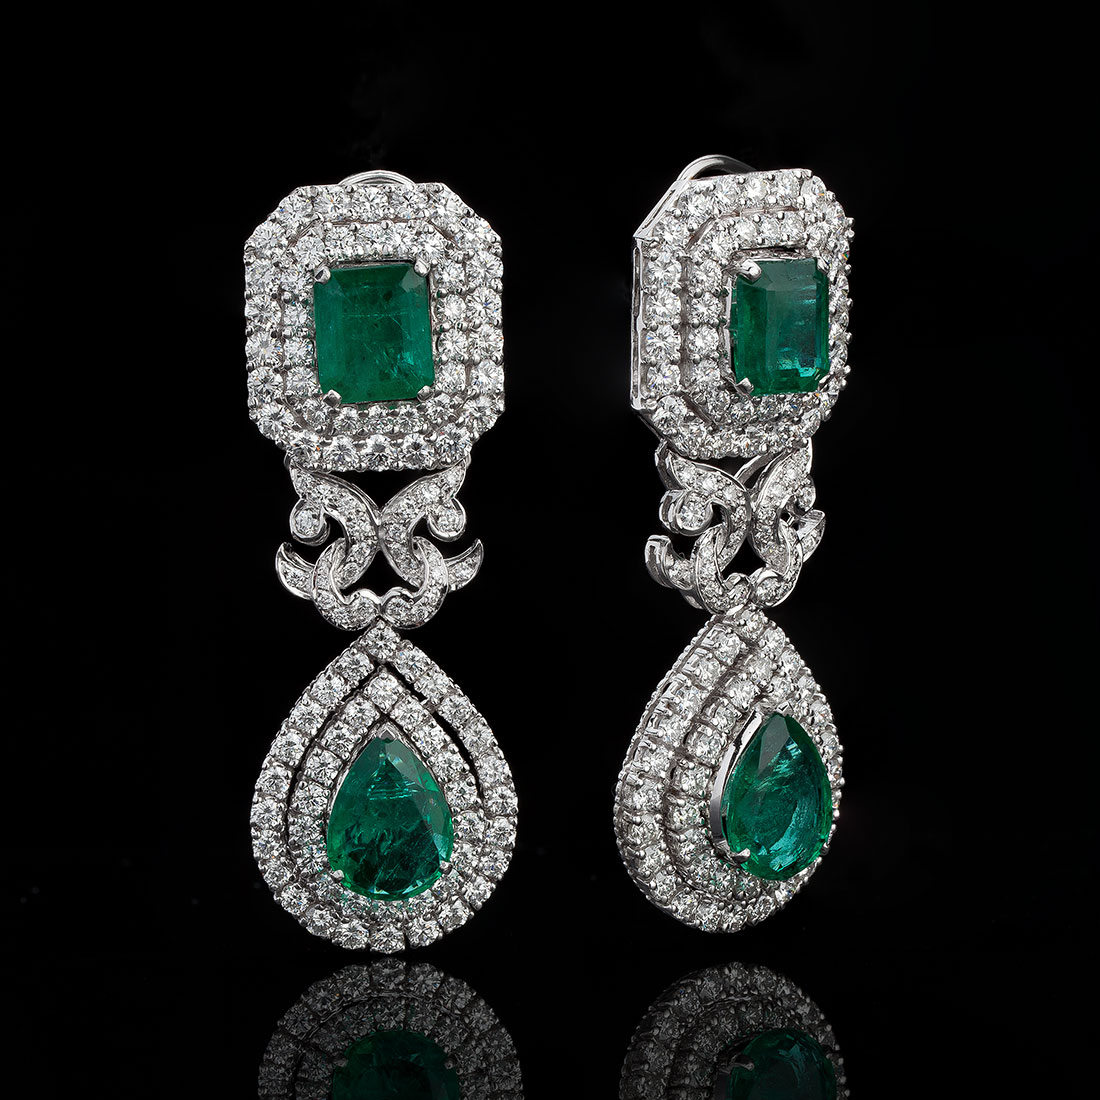 Zambian Emerald and Diamond Cocktail Earrings